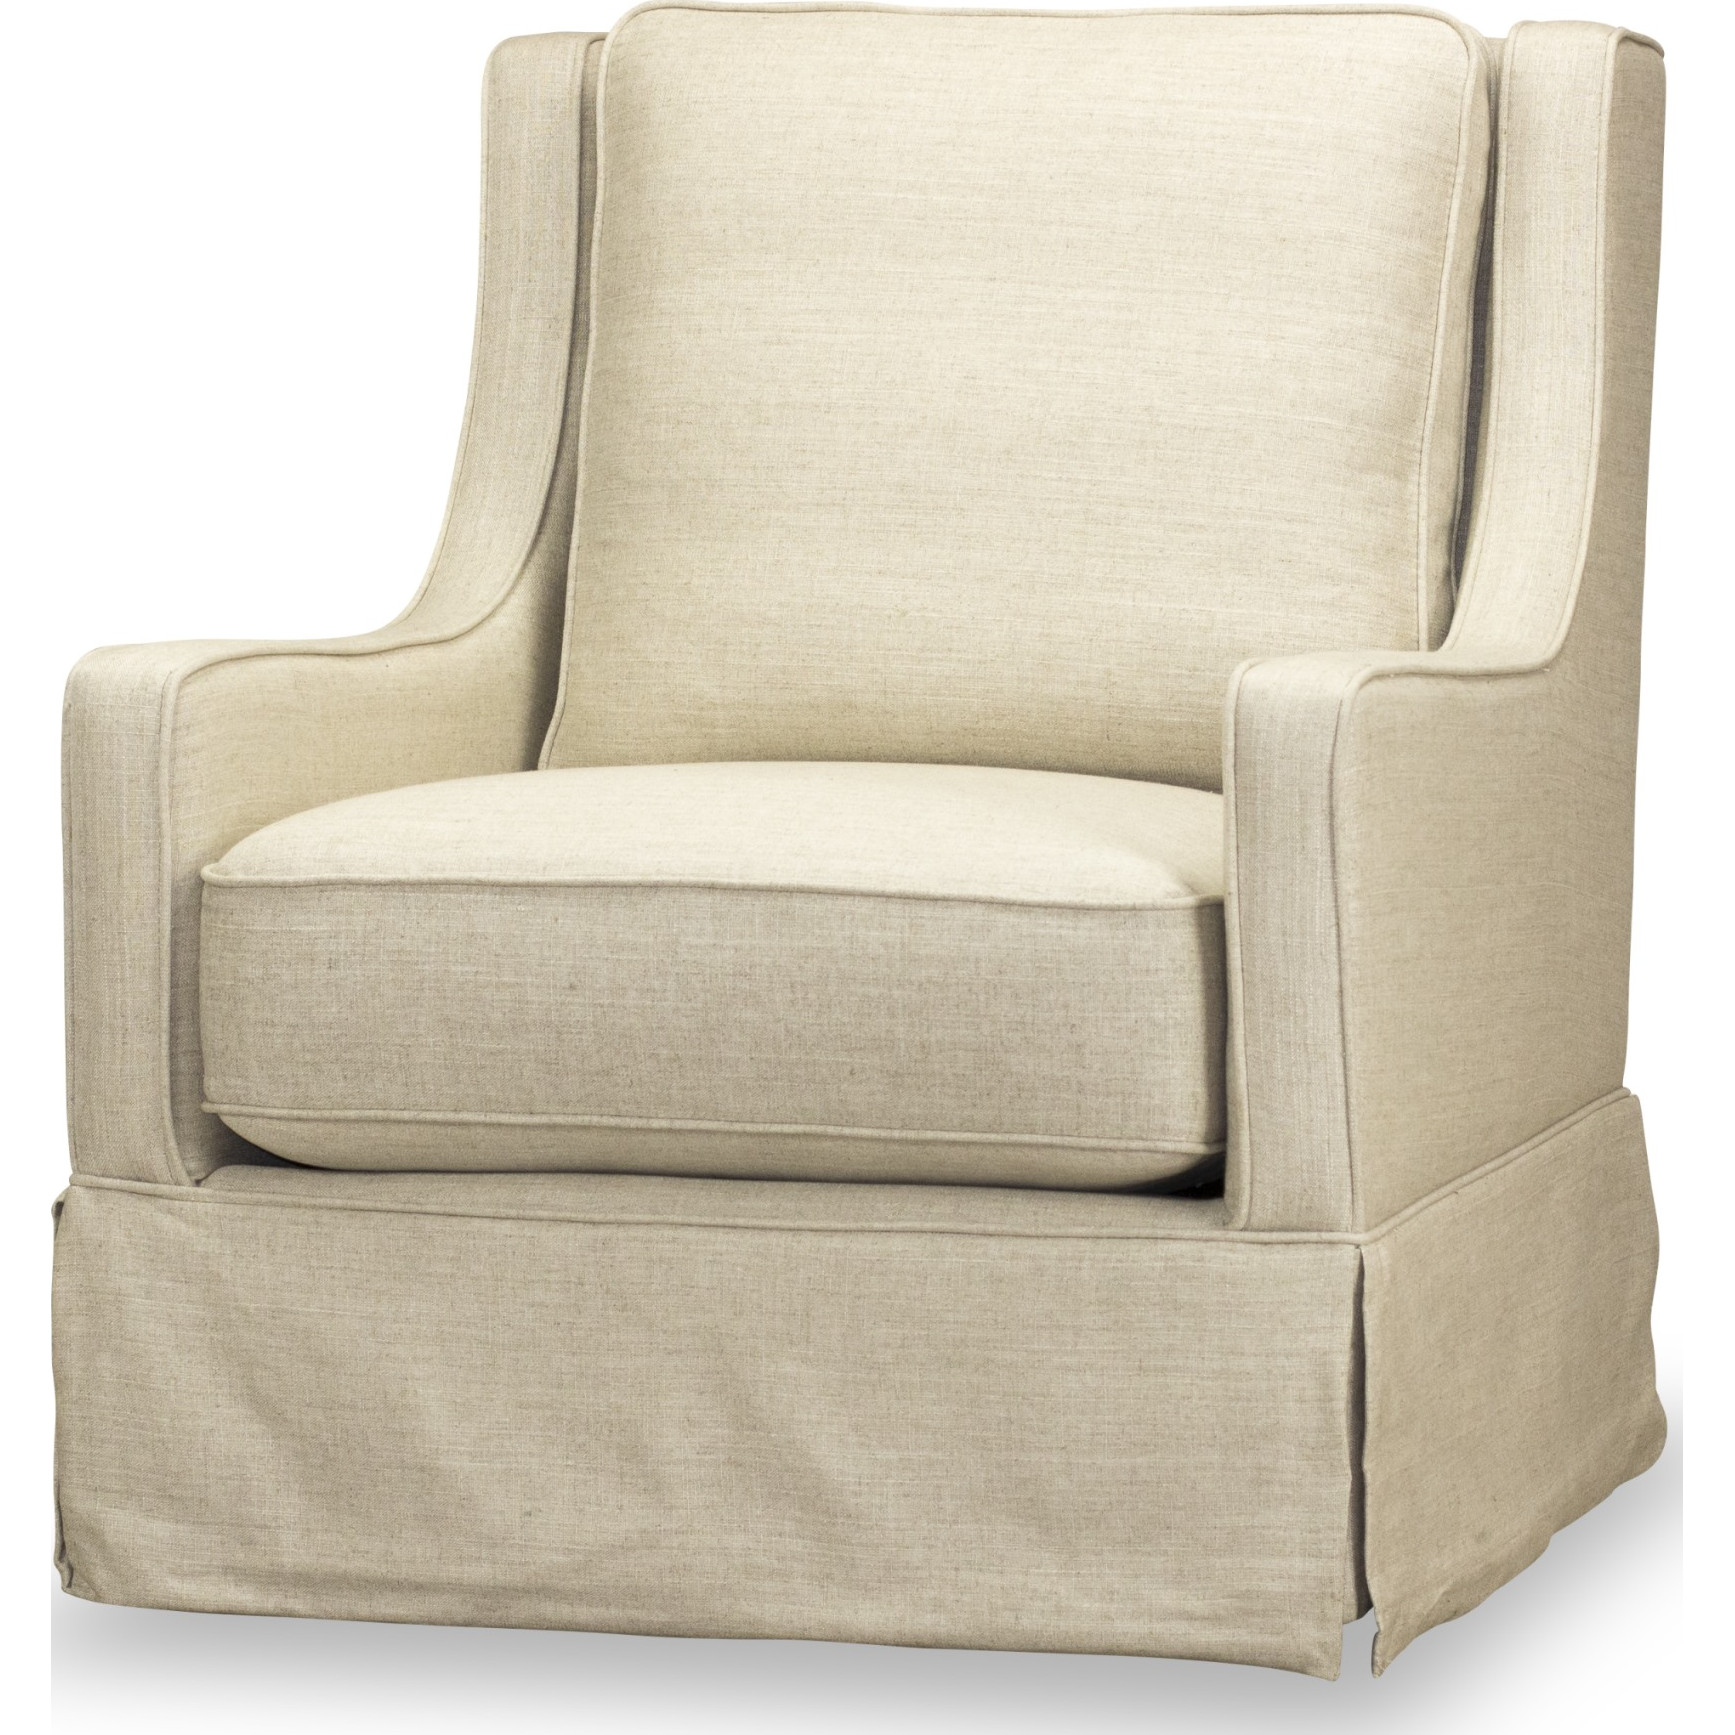 Cool Kelly Swivel Glider Accent Chair In Winfield Natural Fabric By Spectra Home Furnishings Unemploymentrelief Wooden Chair Designs For Living Room Unemploymentrelieforg